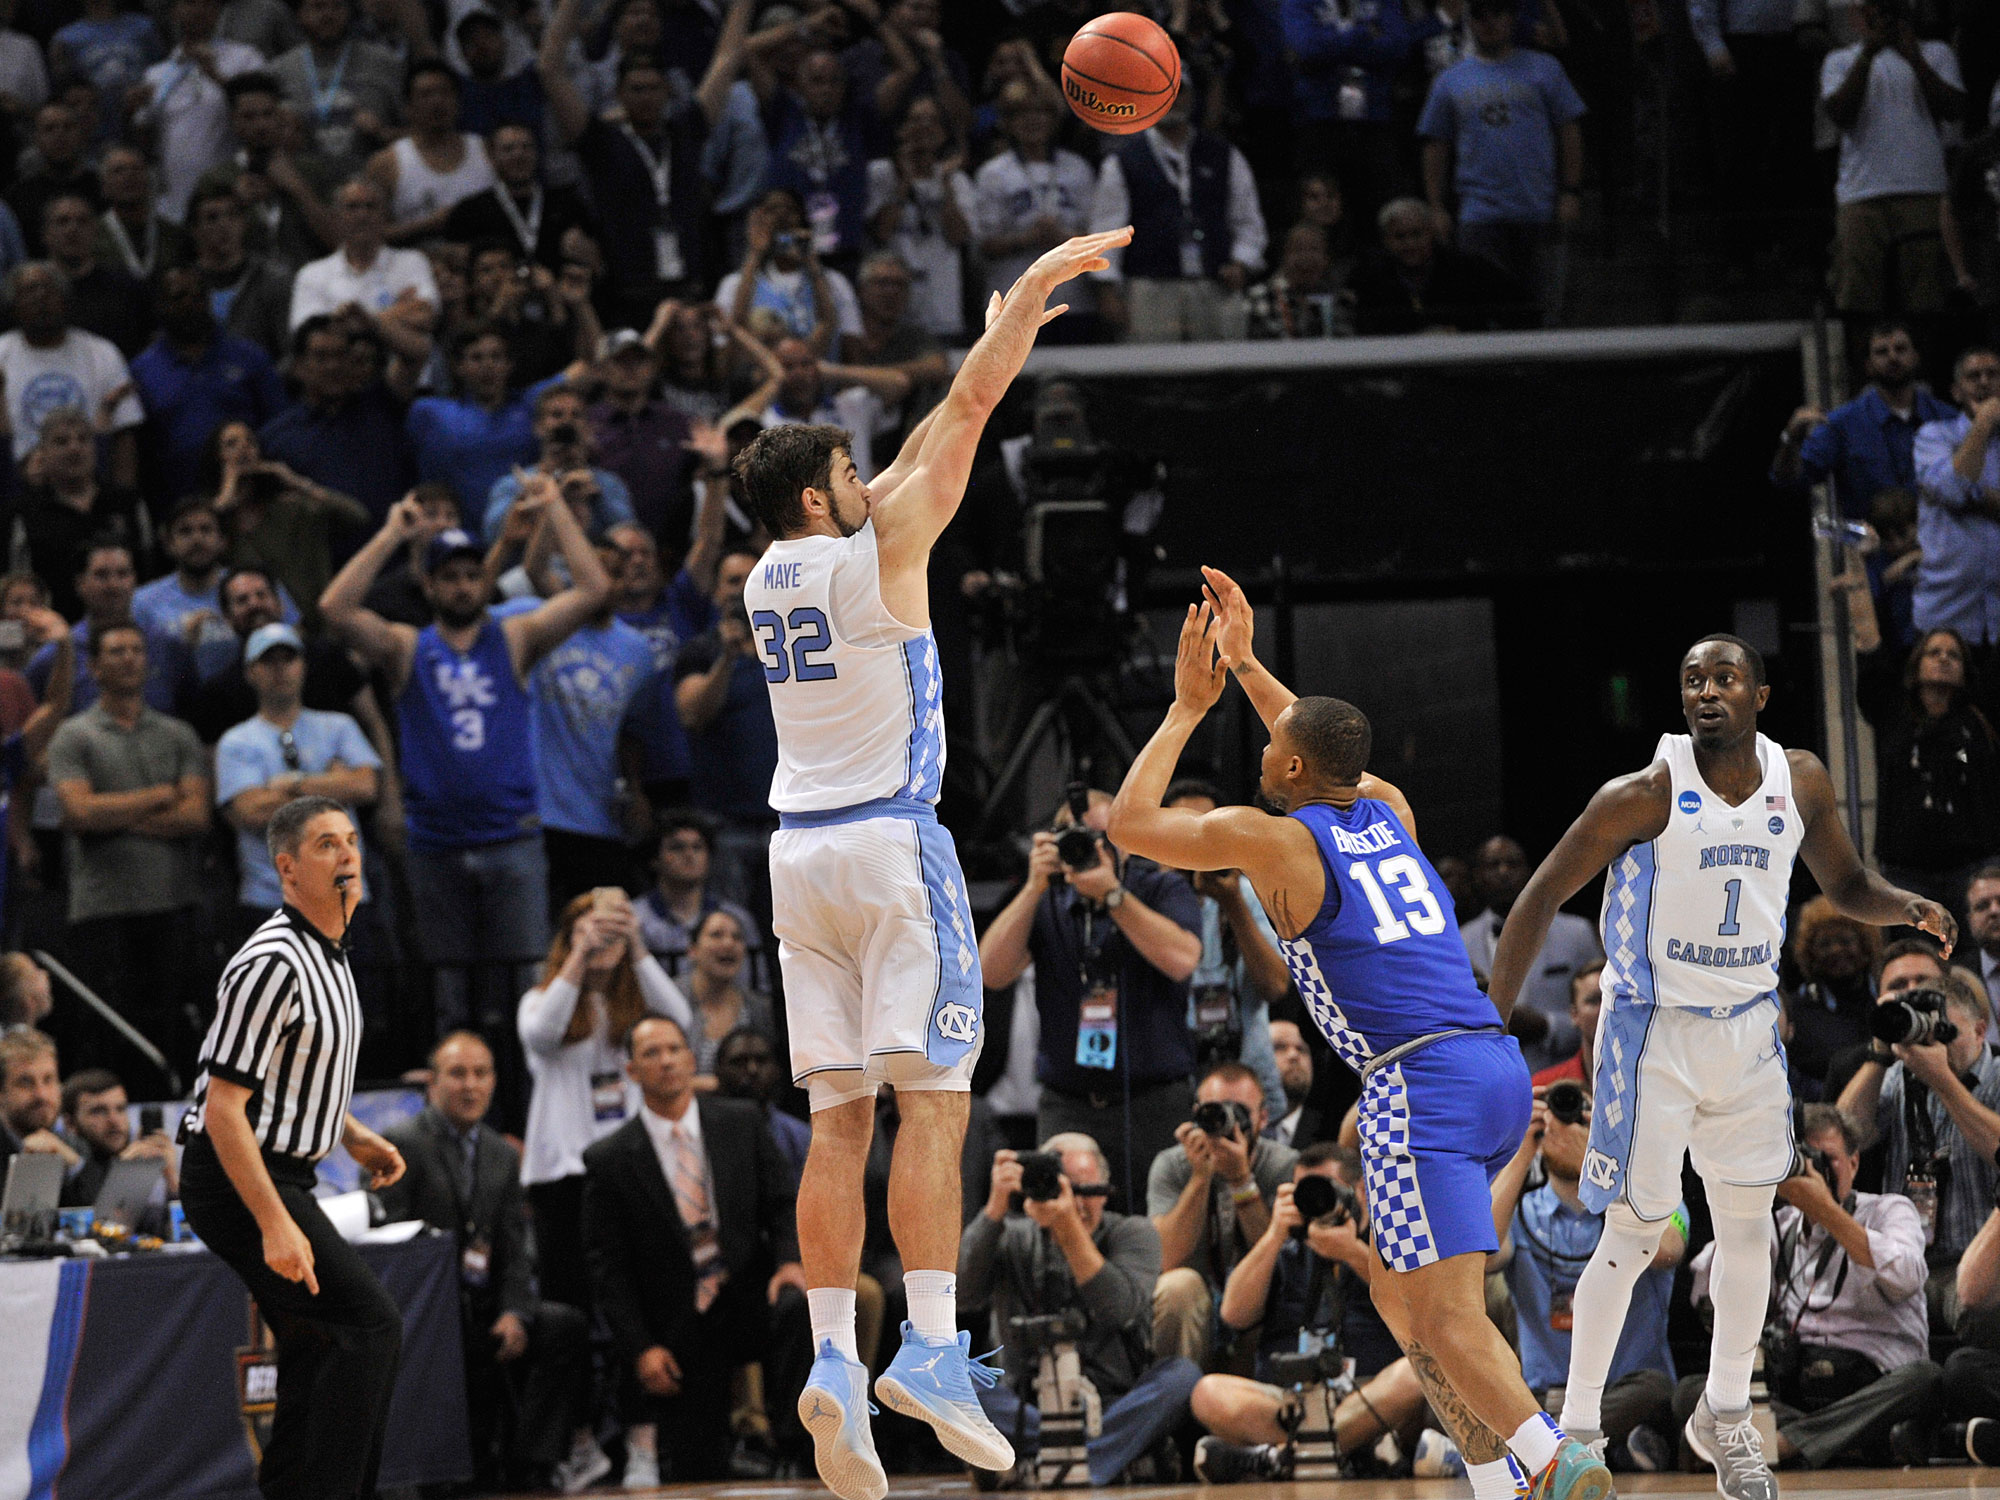 Luke Maye, North Carolina Tar Heels